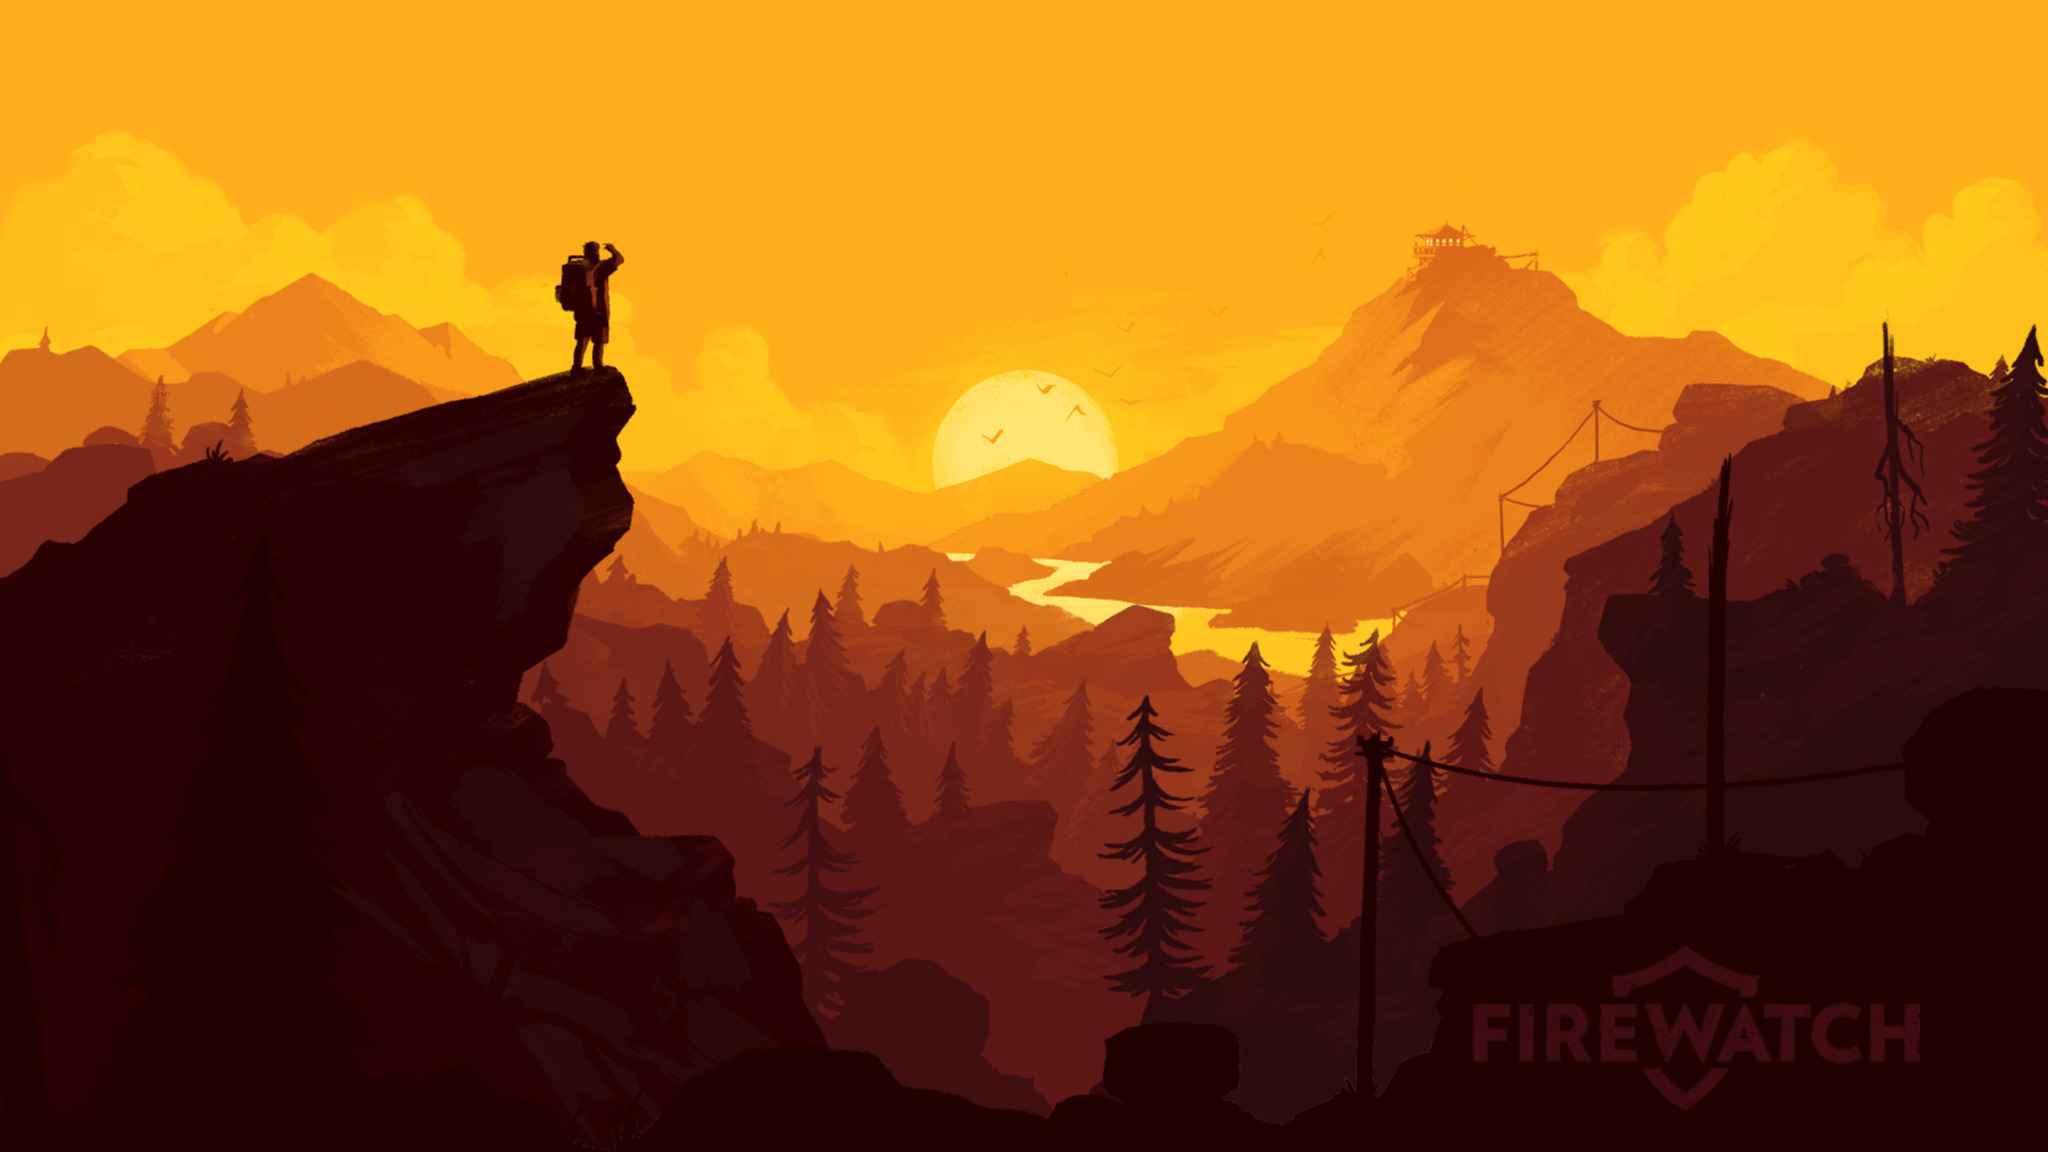 2048x1152 Firewatch PS Game 2048x1152 Resolution HD 4k